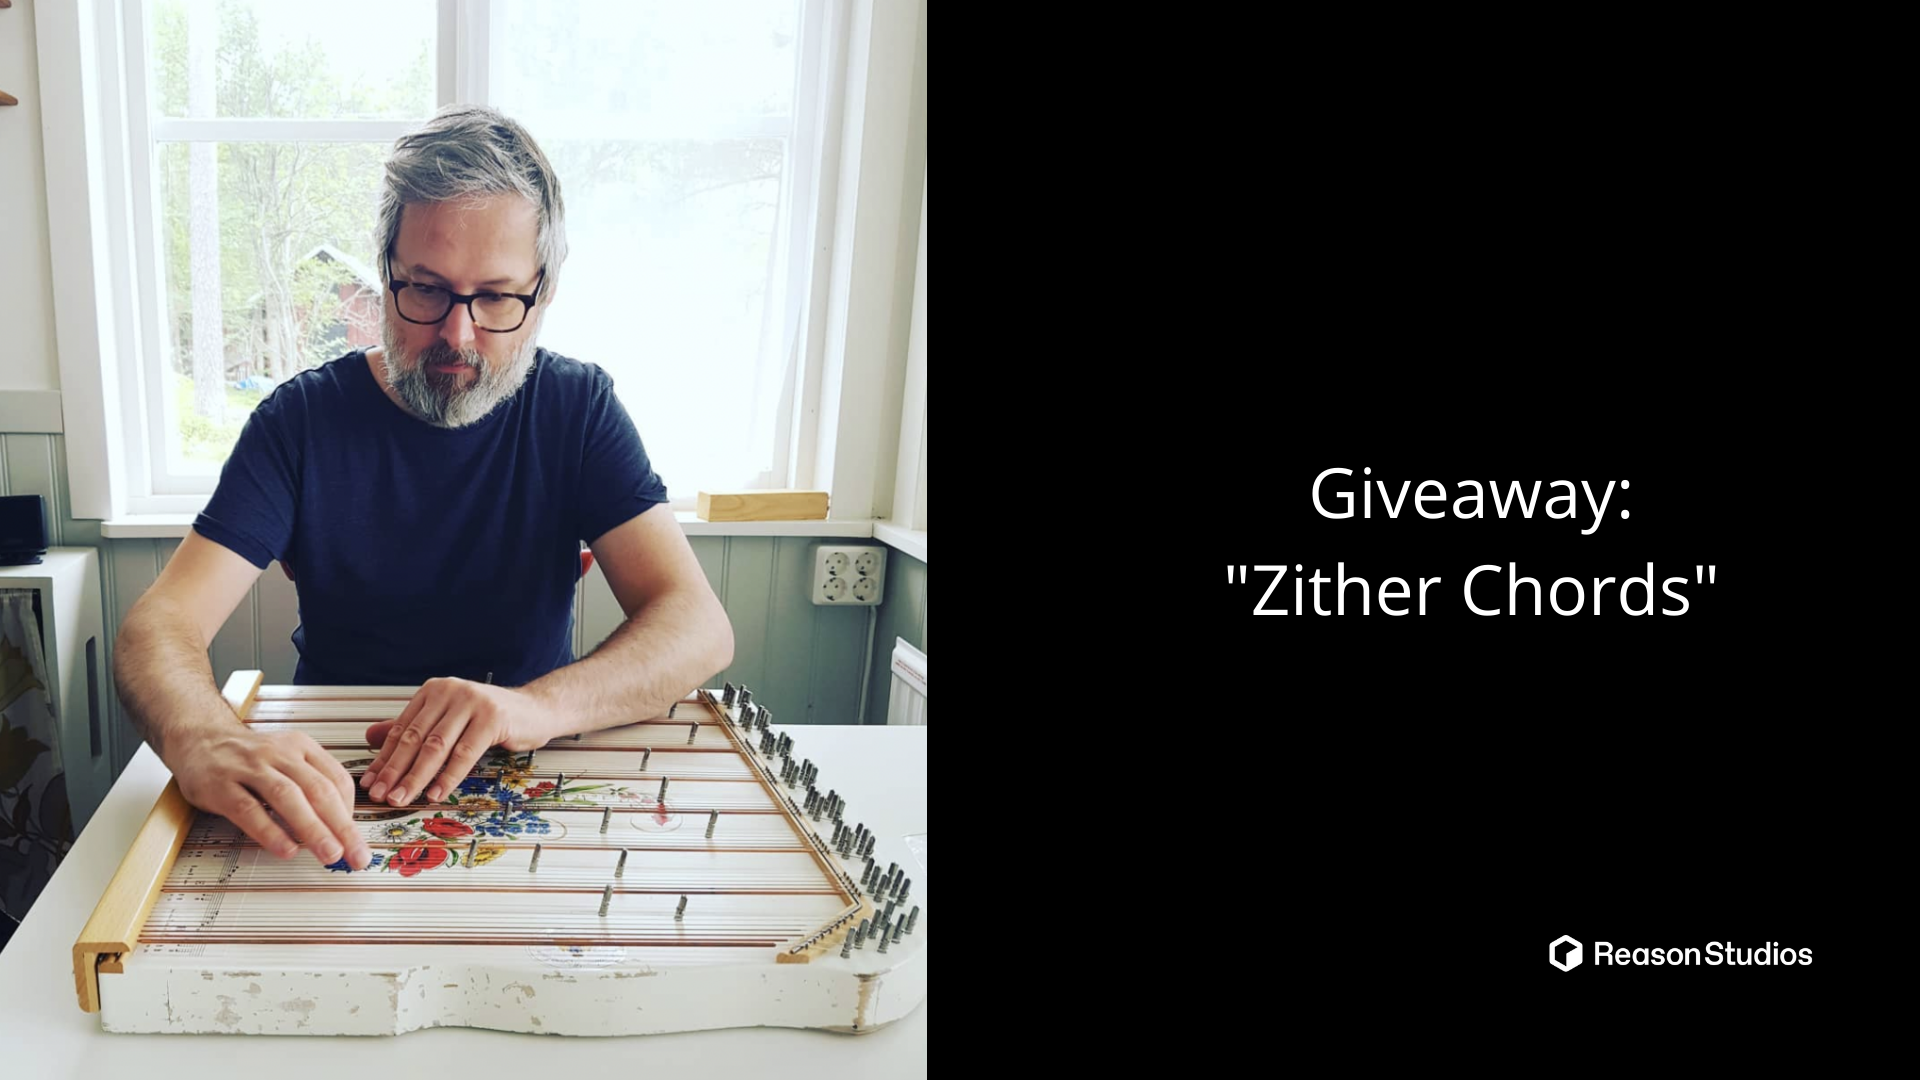 Friday Giveaway - Zither Chords